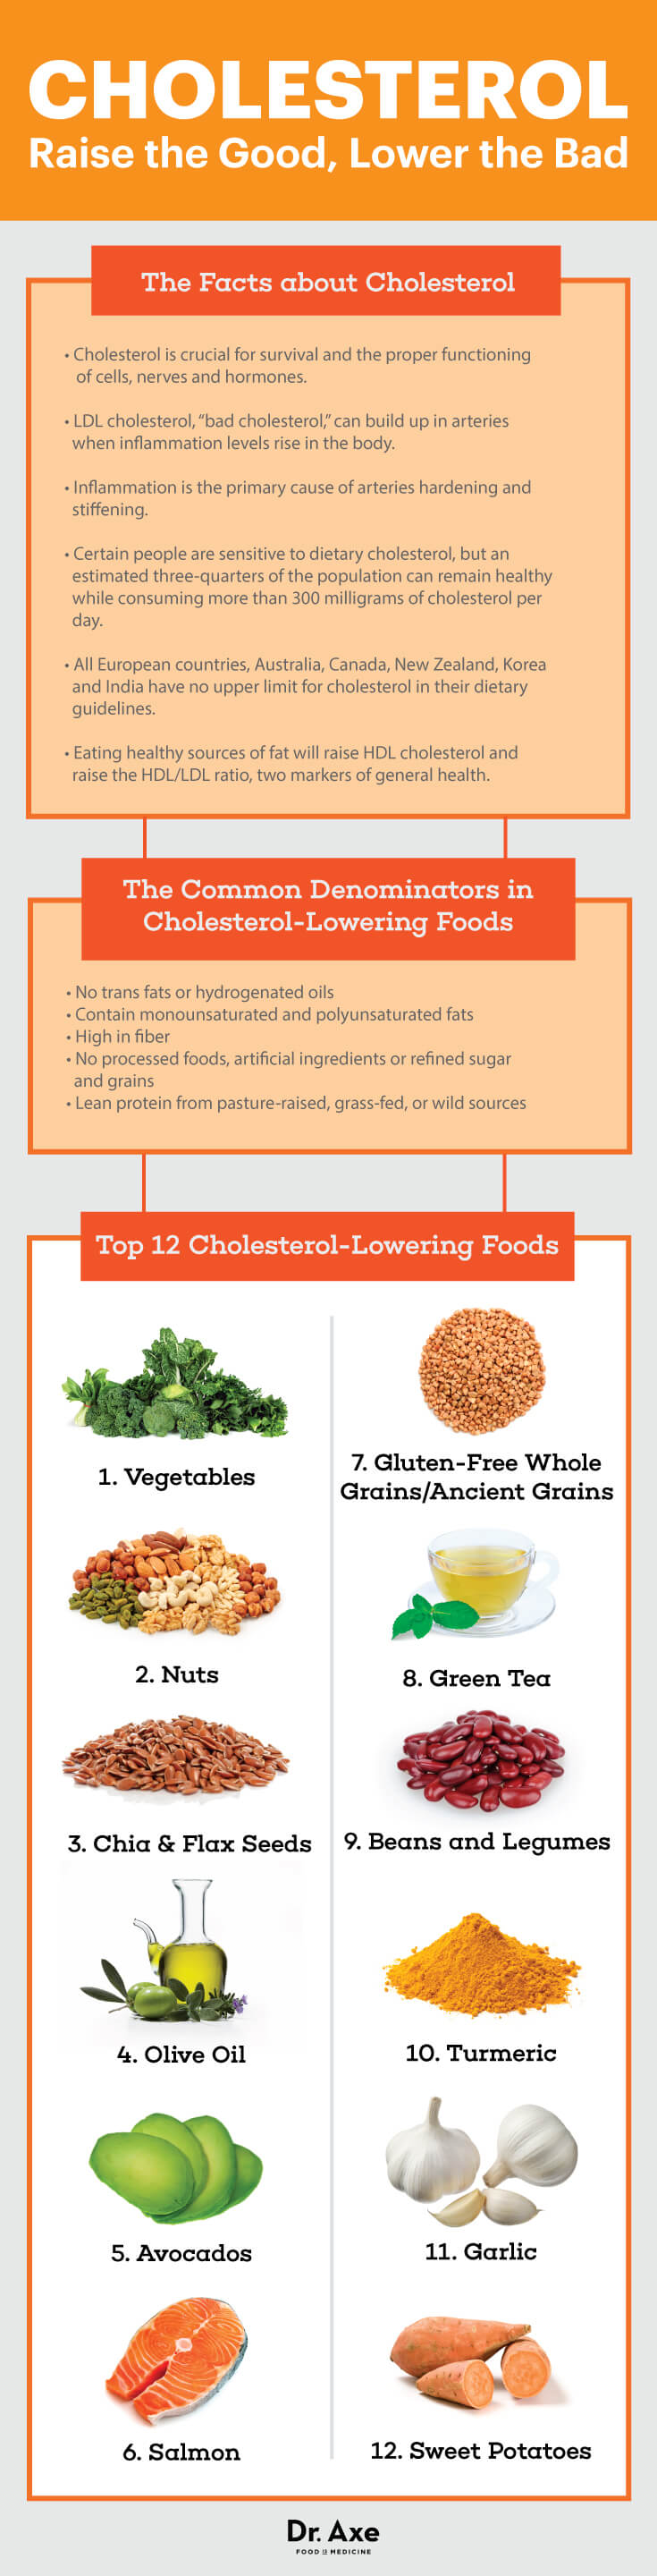 How to Follow a Cholesterol-Lowering Diet